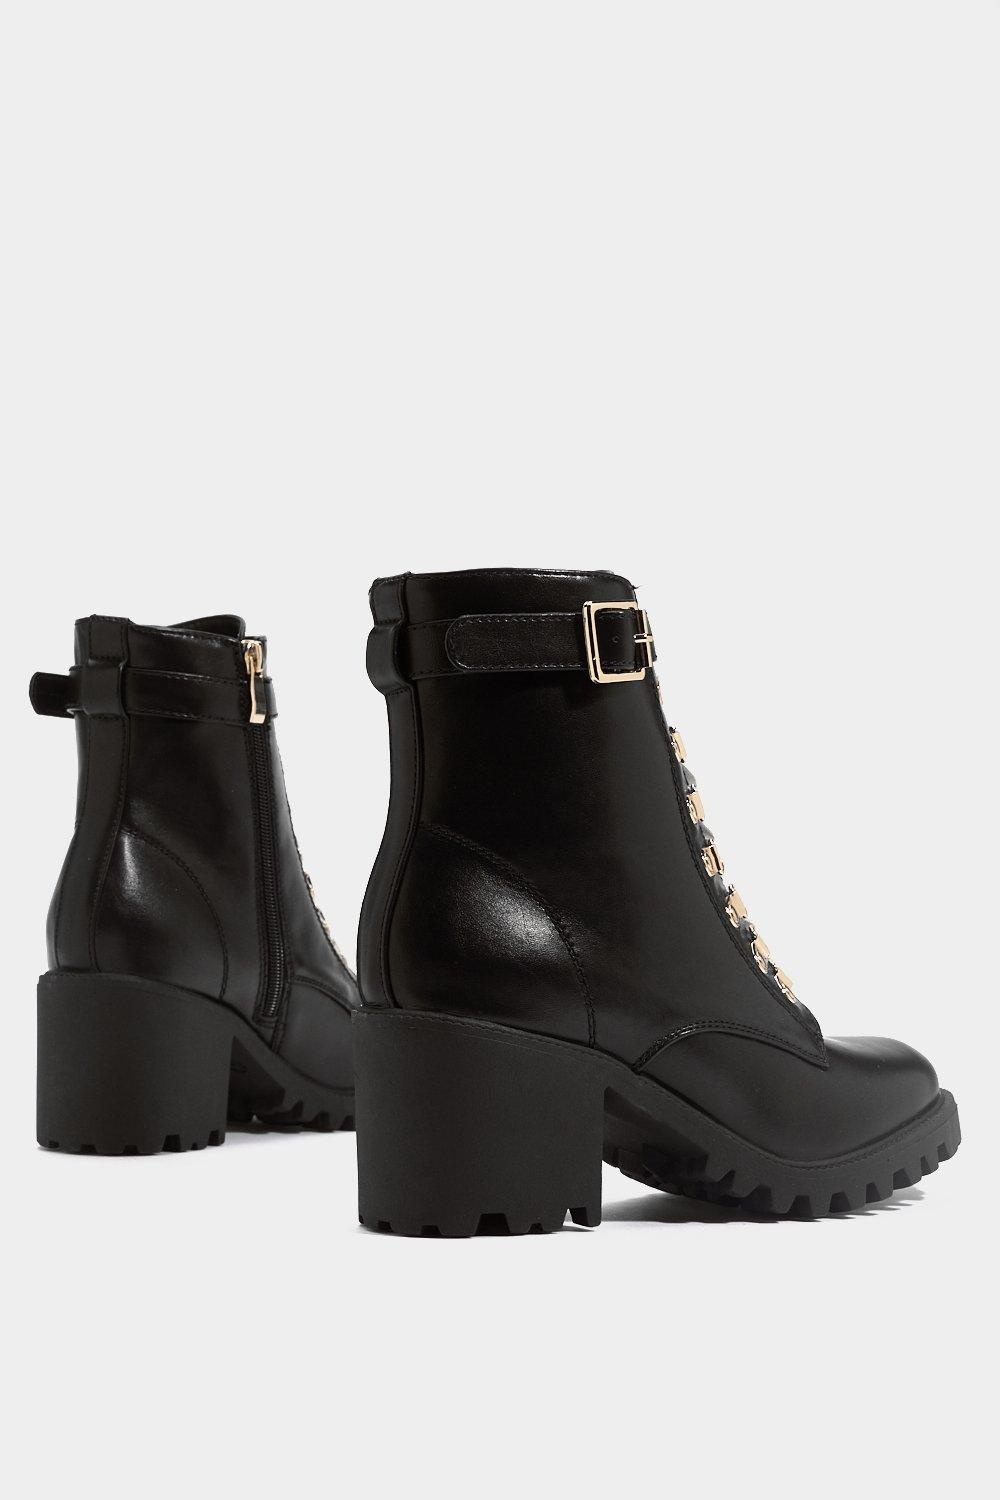 51c24e2e4 Take a Stand Lace-Up Hiker Boot   Shop Clothes at Nasty Gal!